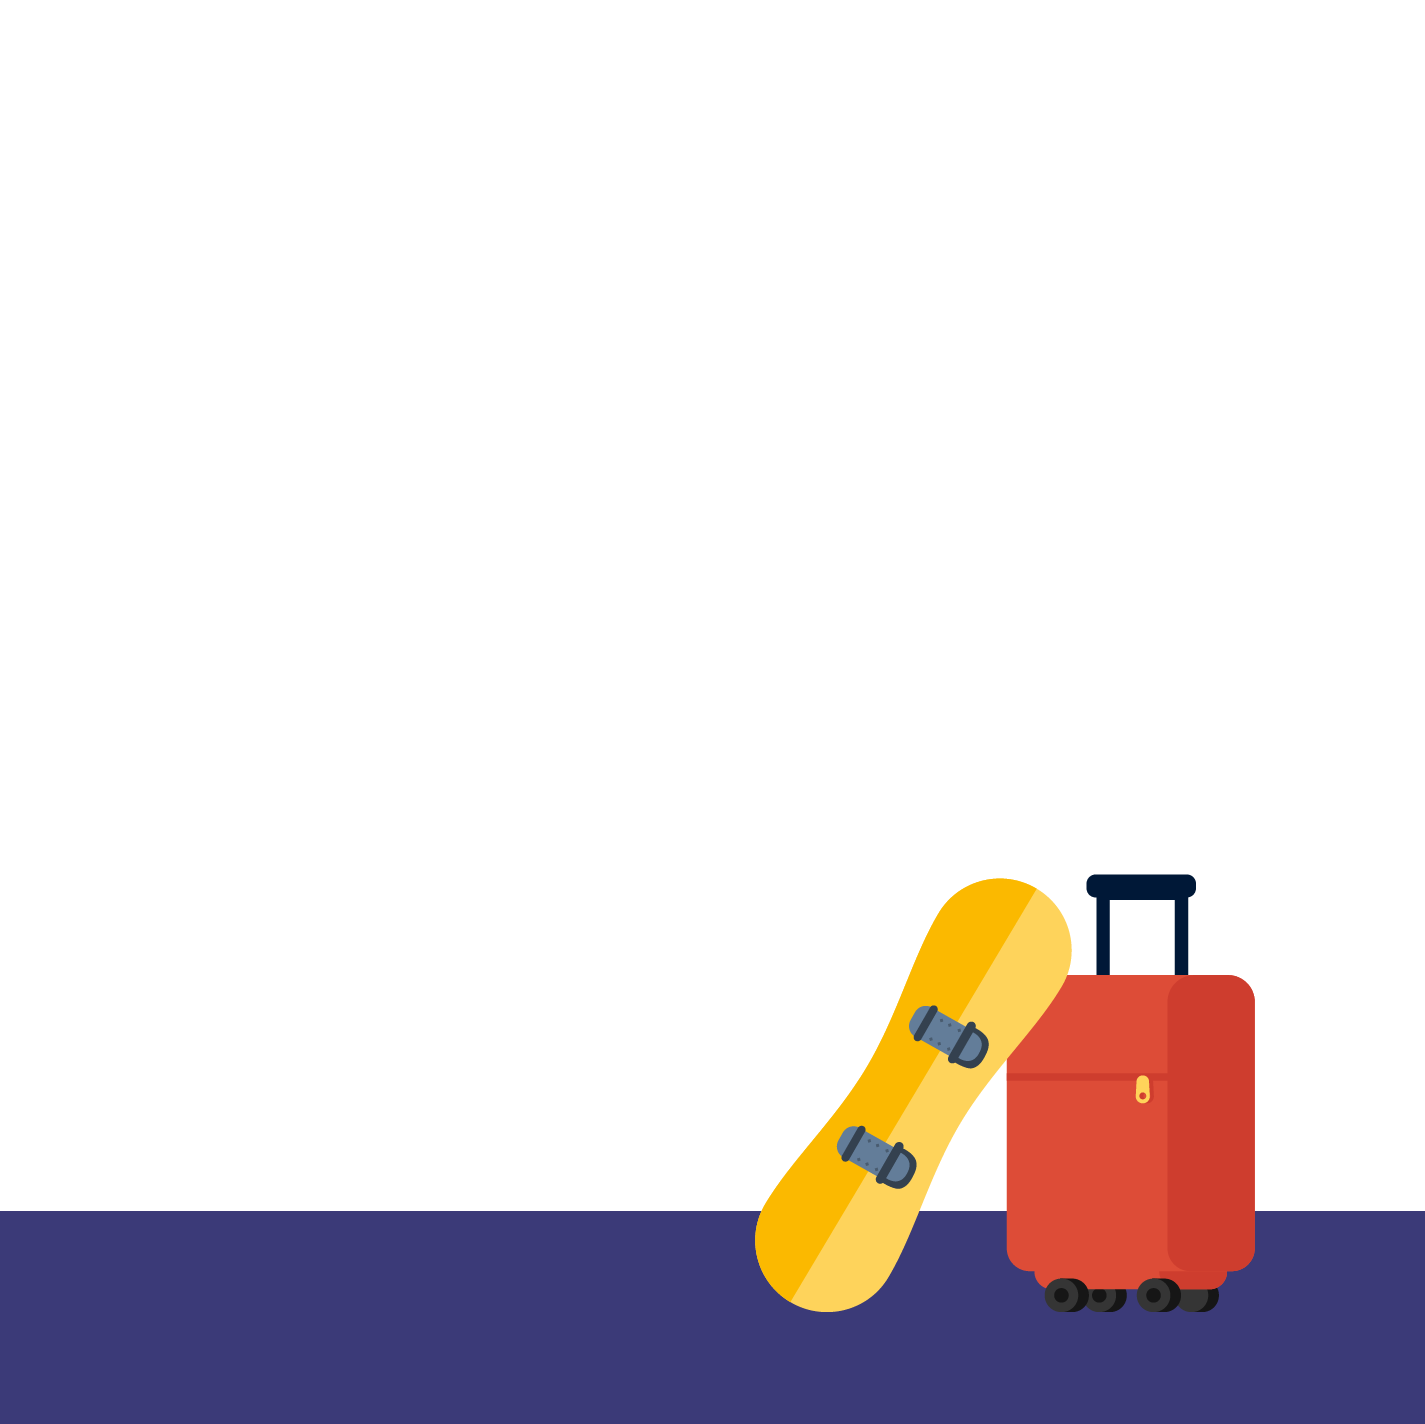 red suitcase and yellow snowboard as travel baggage